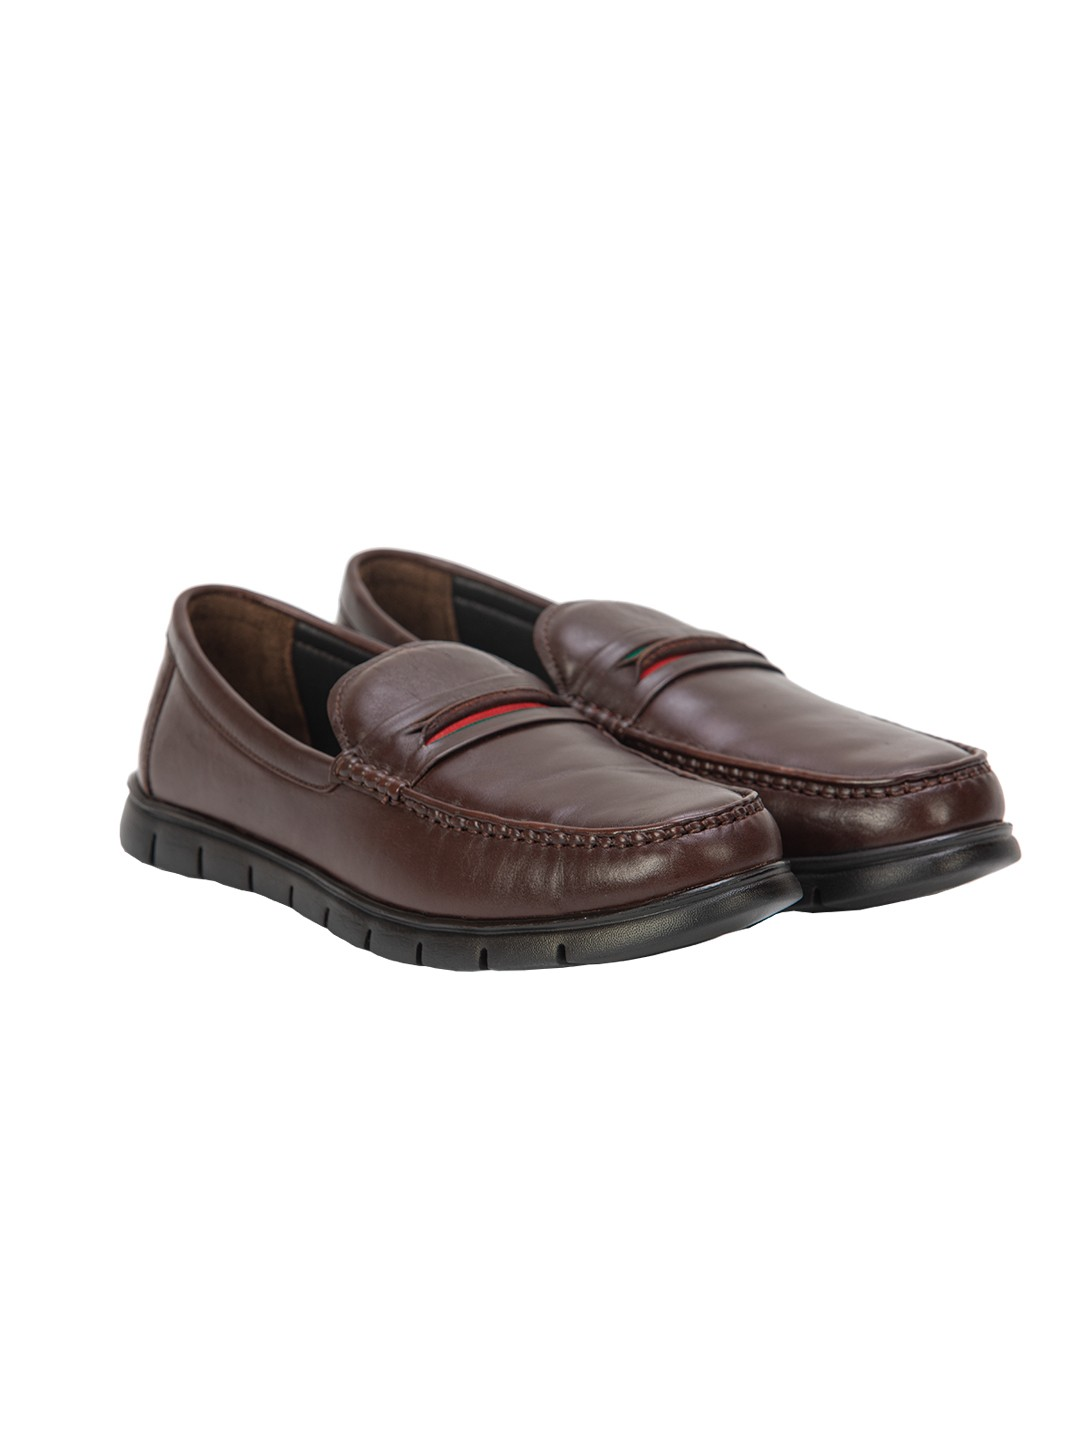 Buy Von Wellx Germany Comfort Brown Rhett Shoes Online in Dubai